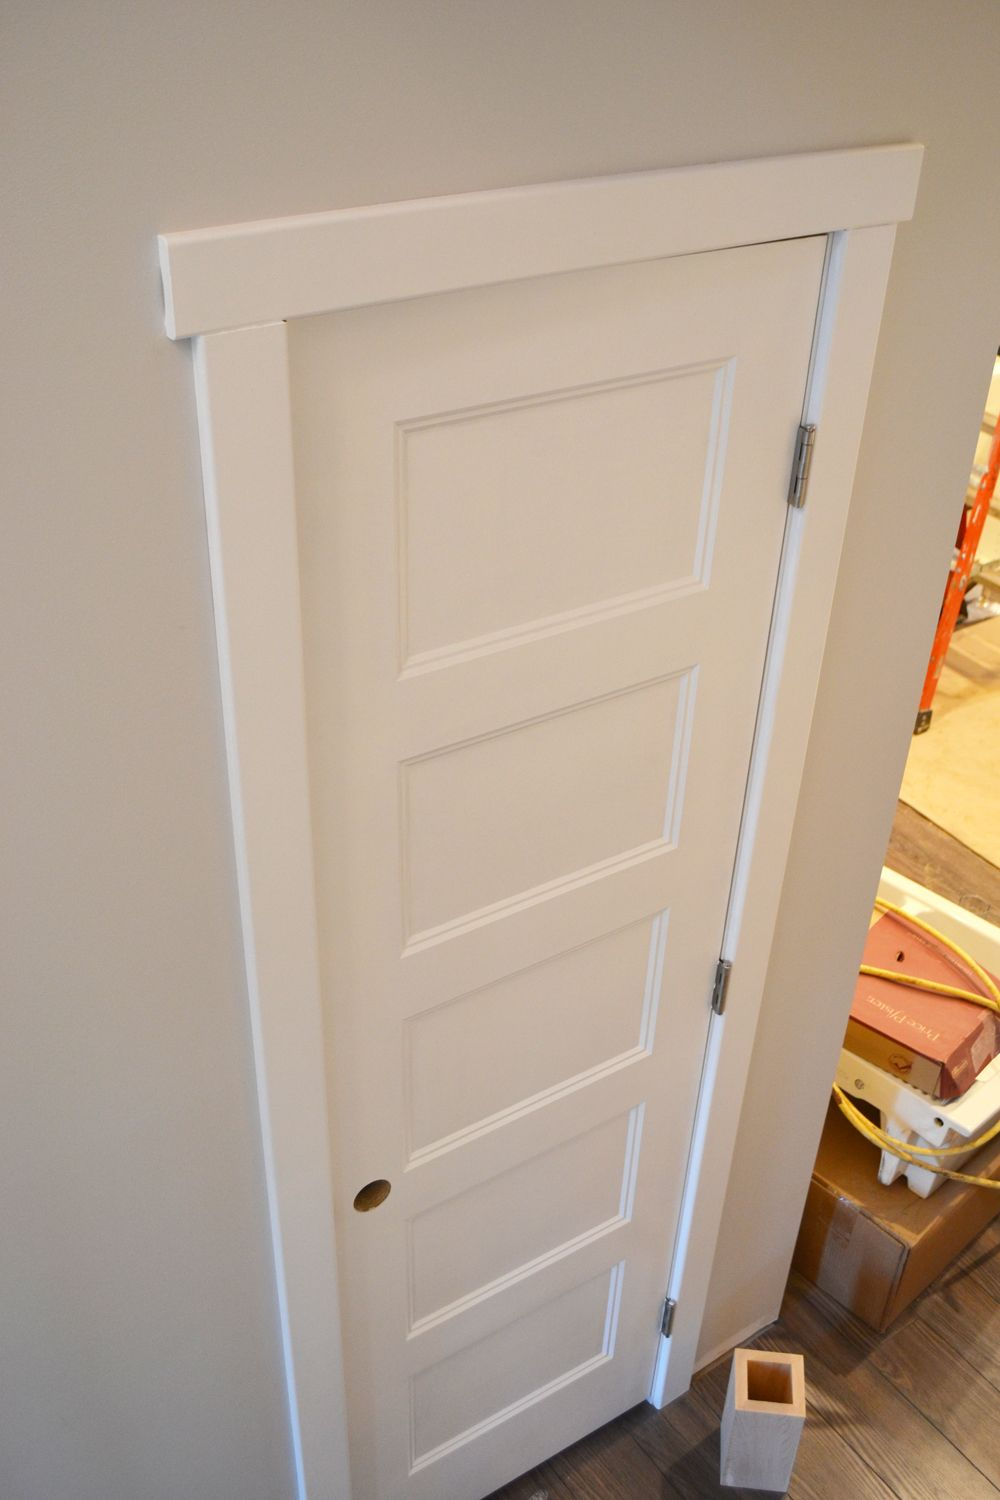 Craftsman window trim styles - Painting Doors With A Streak Free Finish Where We Found Our Gorgeous Shaker Craftsman Trimtraditional